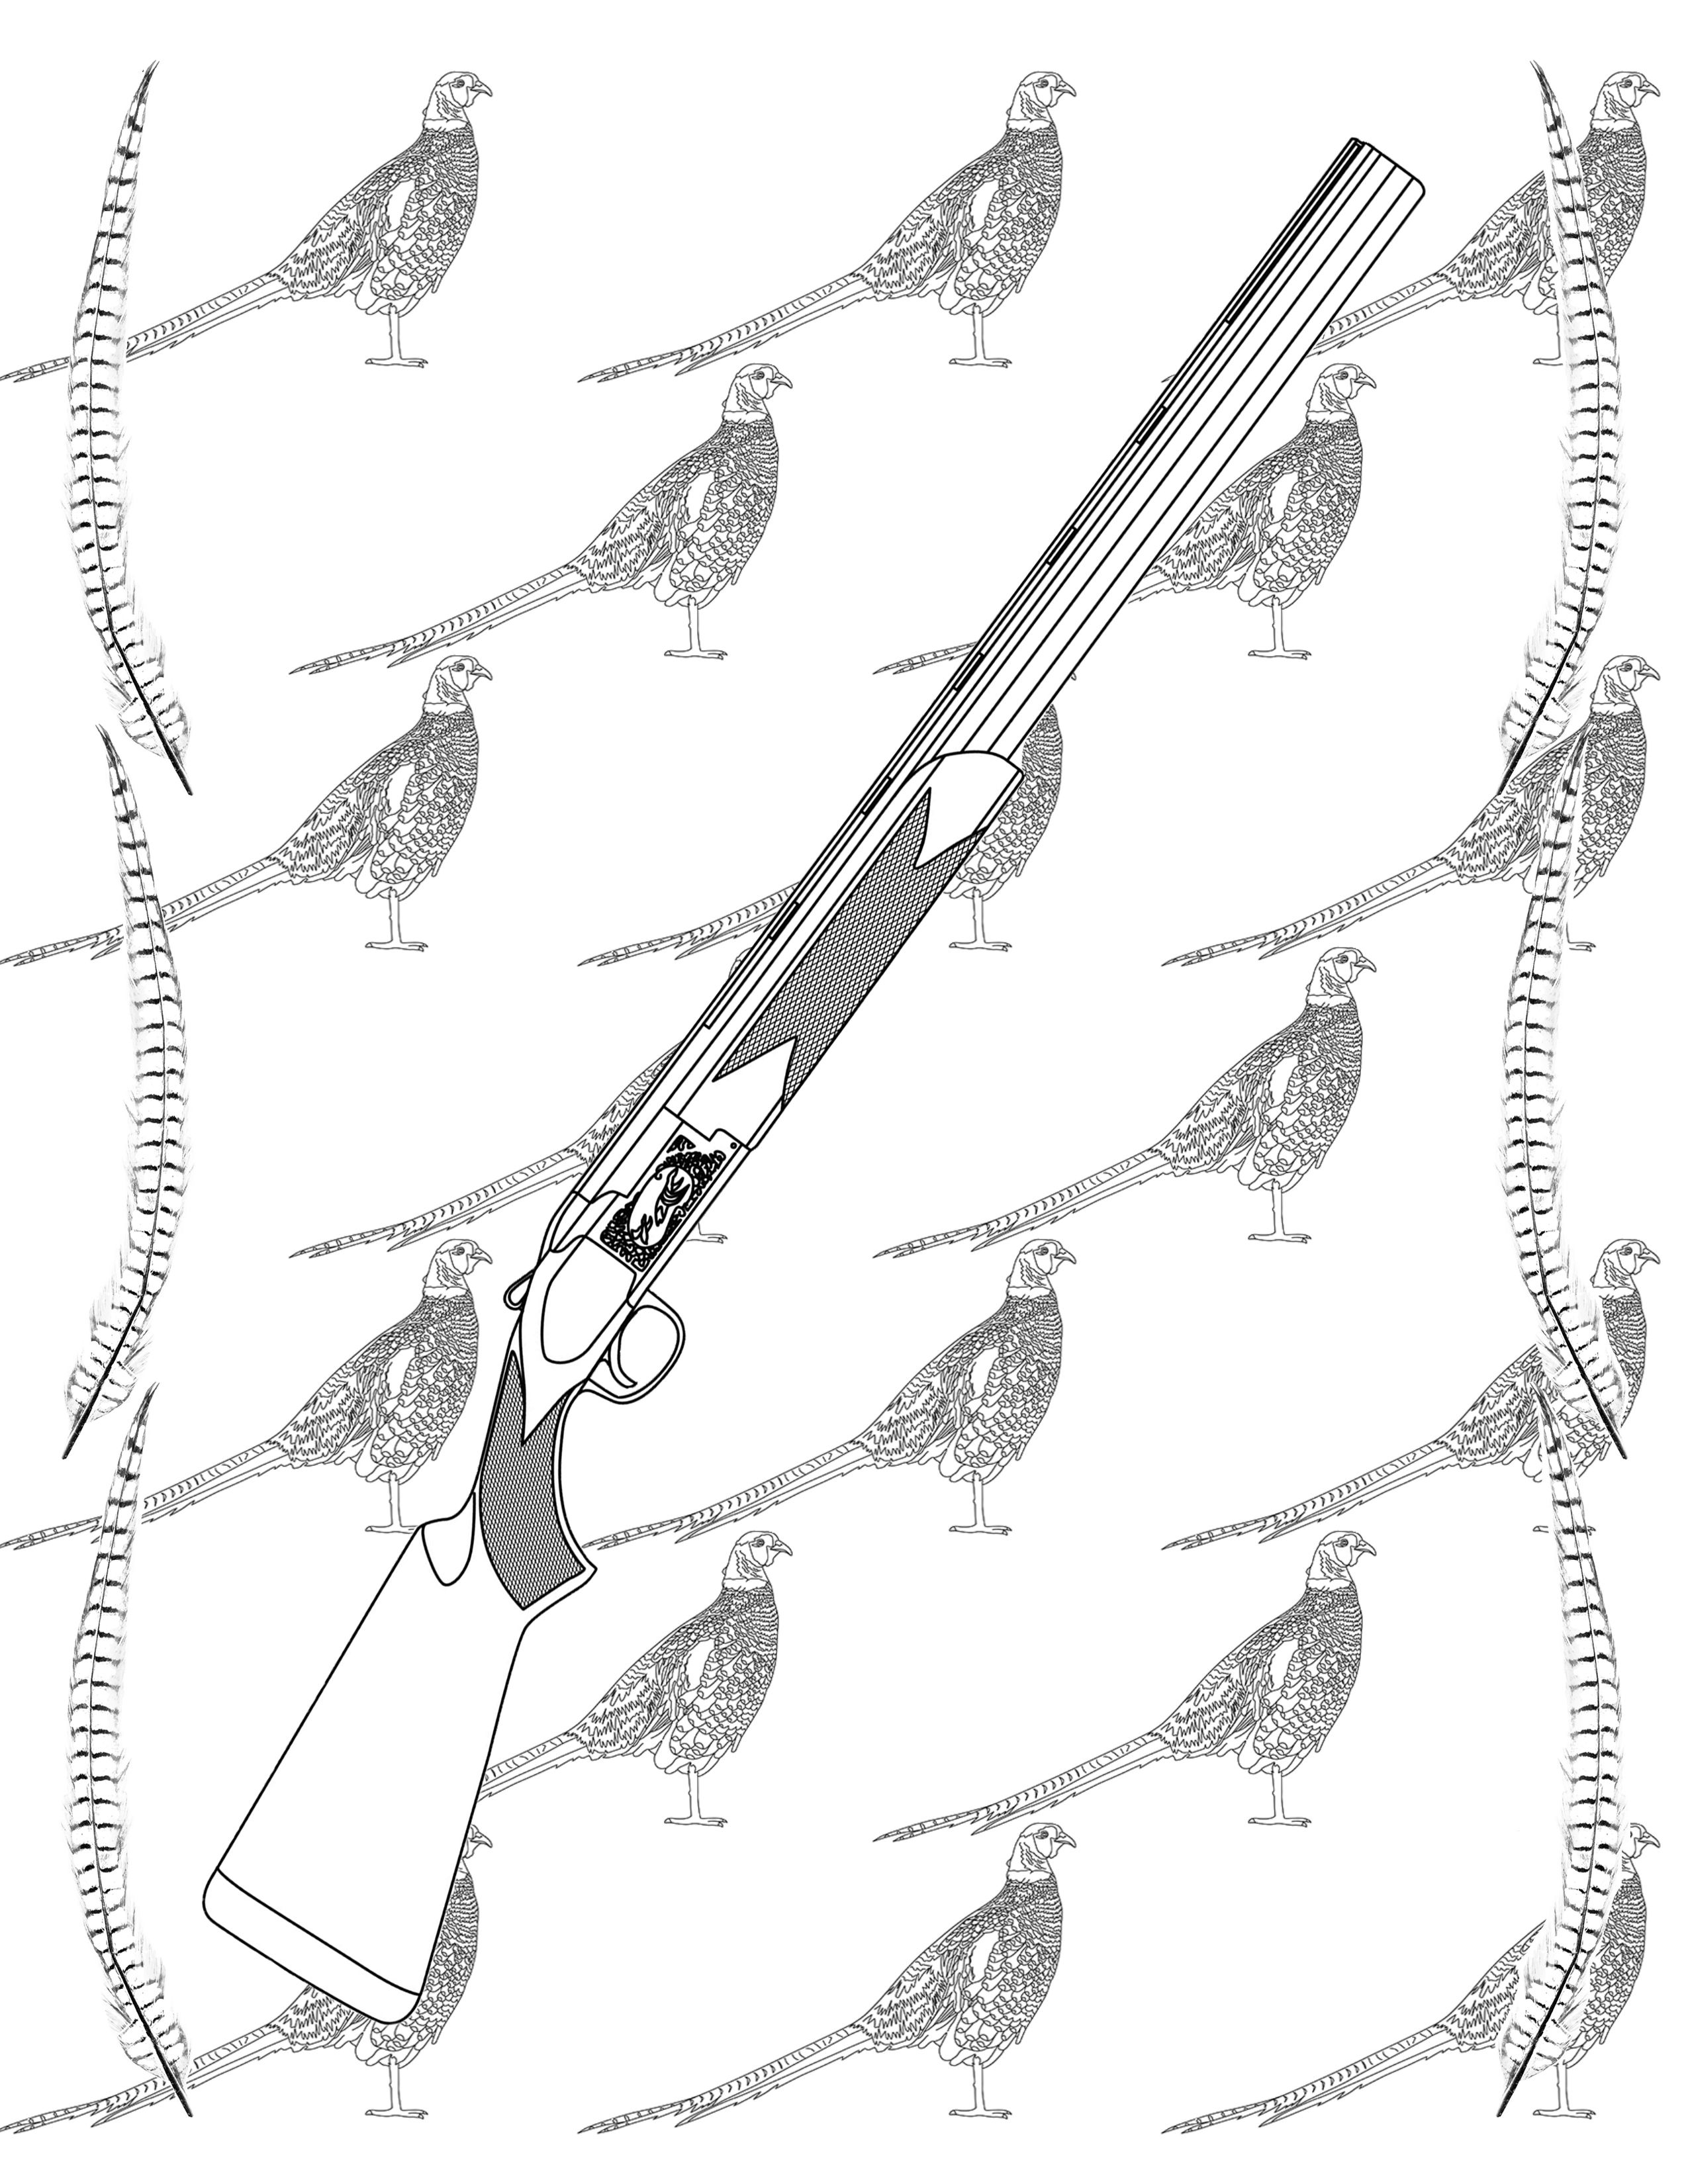 Browning over and under is the perfect upland game hunting shotgun ...